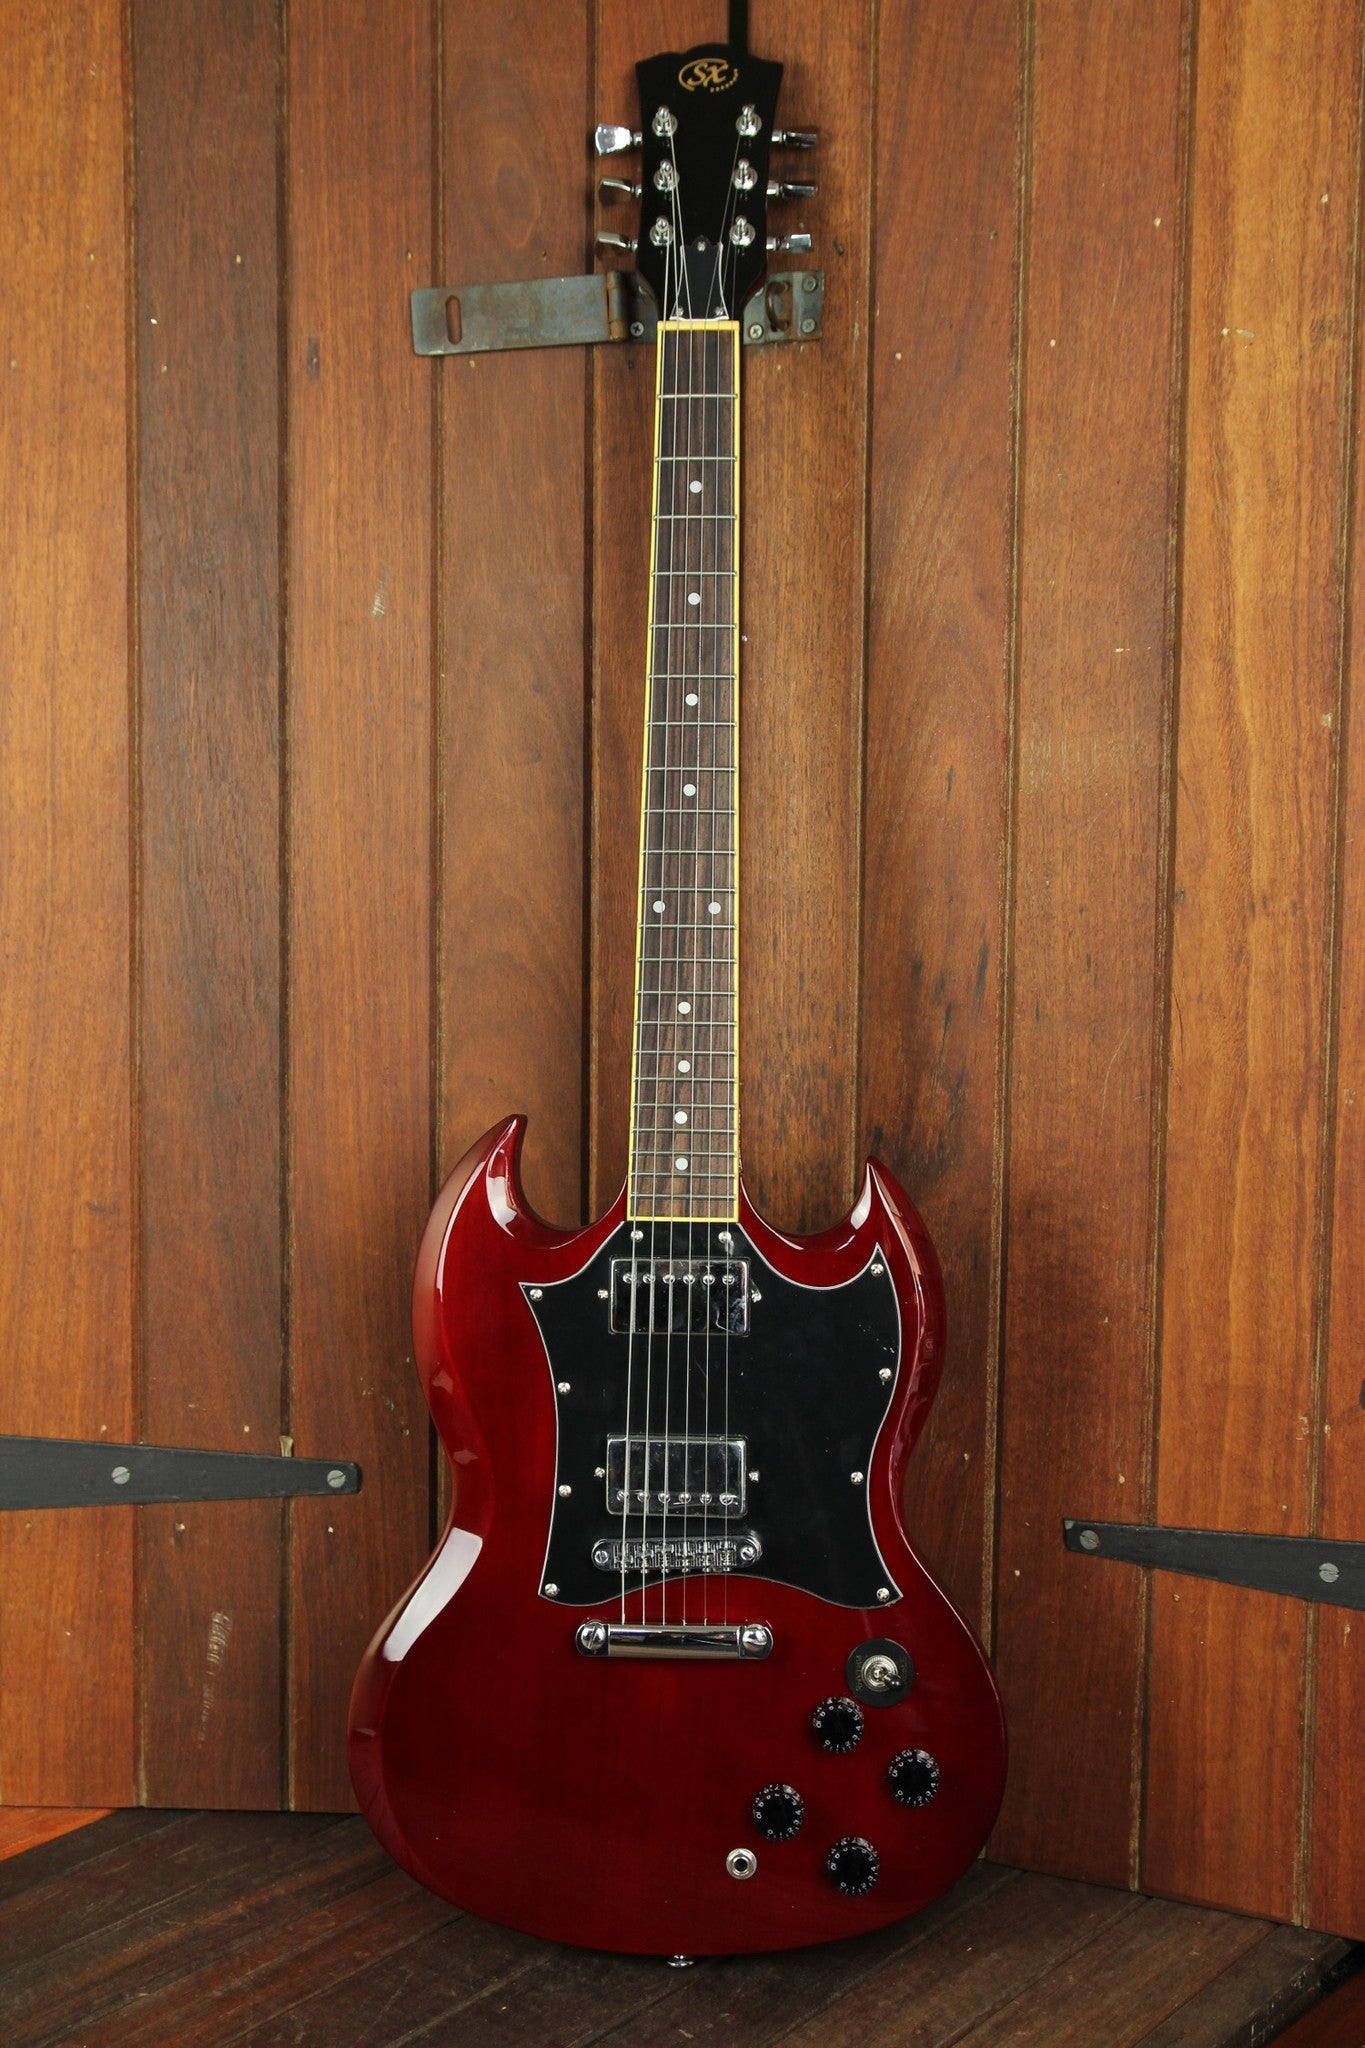 SX Vintage SG Style Electric Guitar Wine Red - The Rock Inn - 2